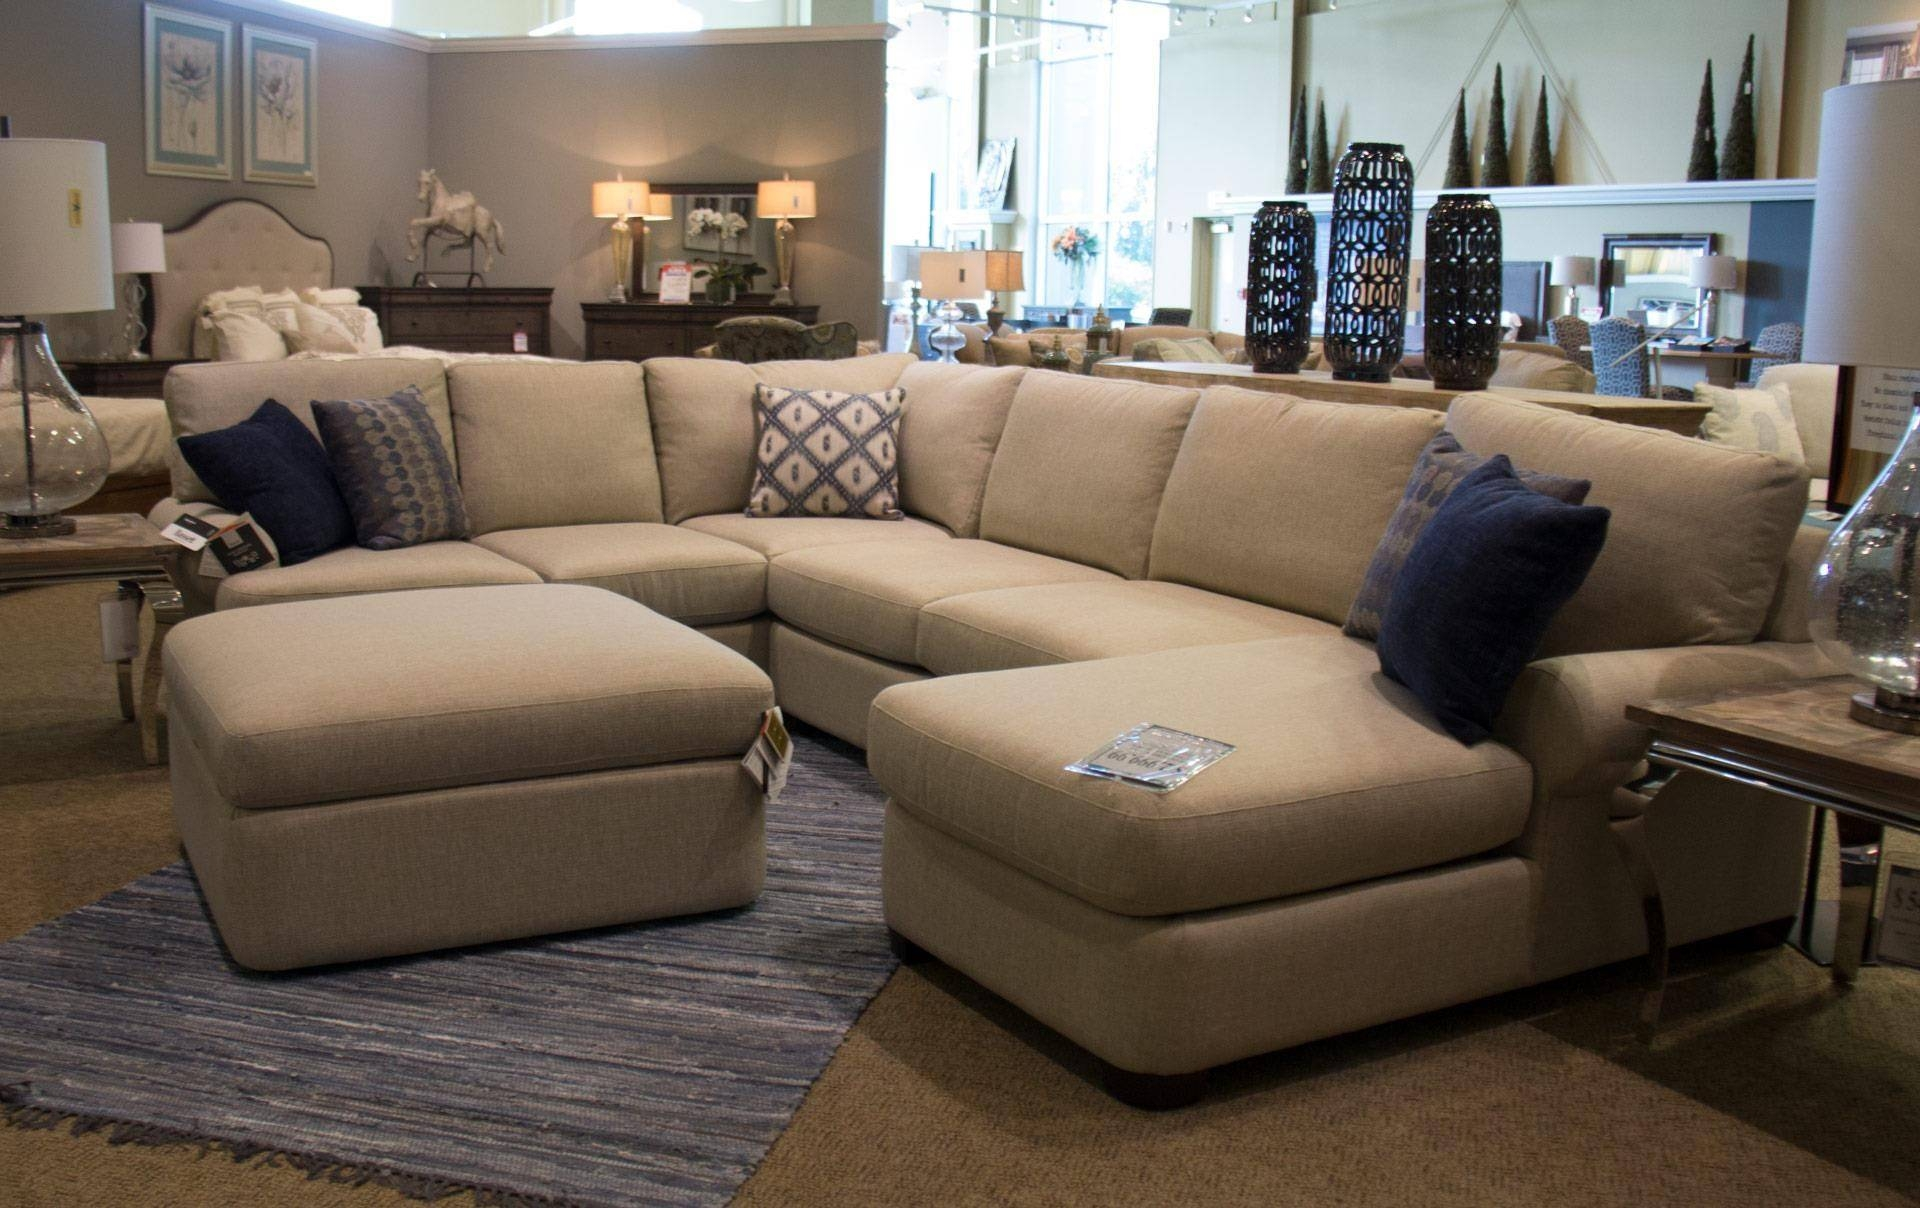 Bassett Monterey 3 Pc. Sectional Sofa - Great American Home Store within Bassett Sectional Sofa (Image 7 of 30)